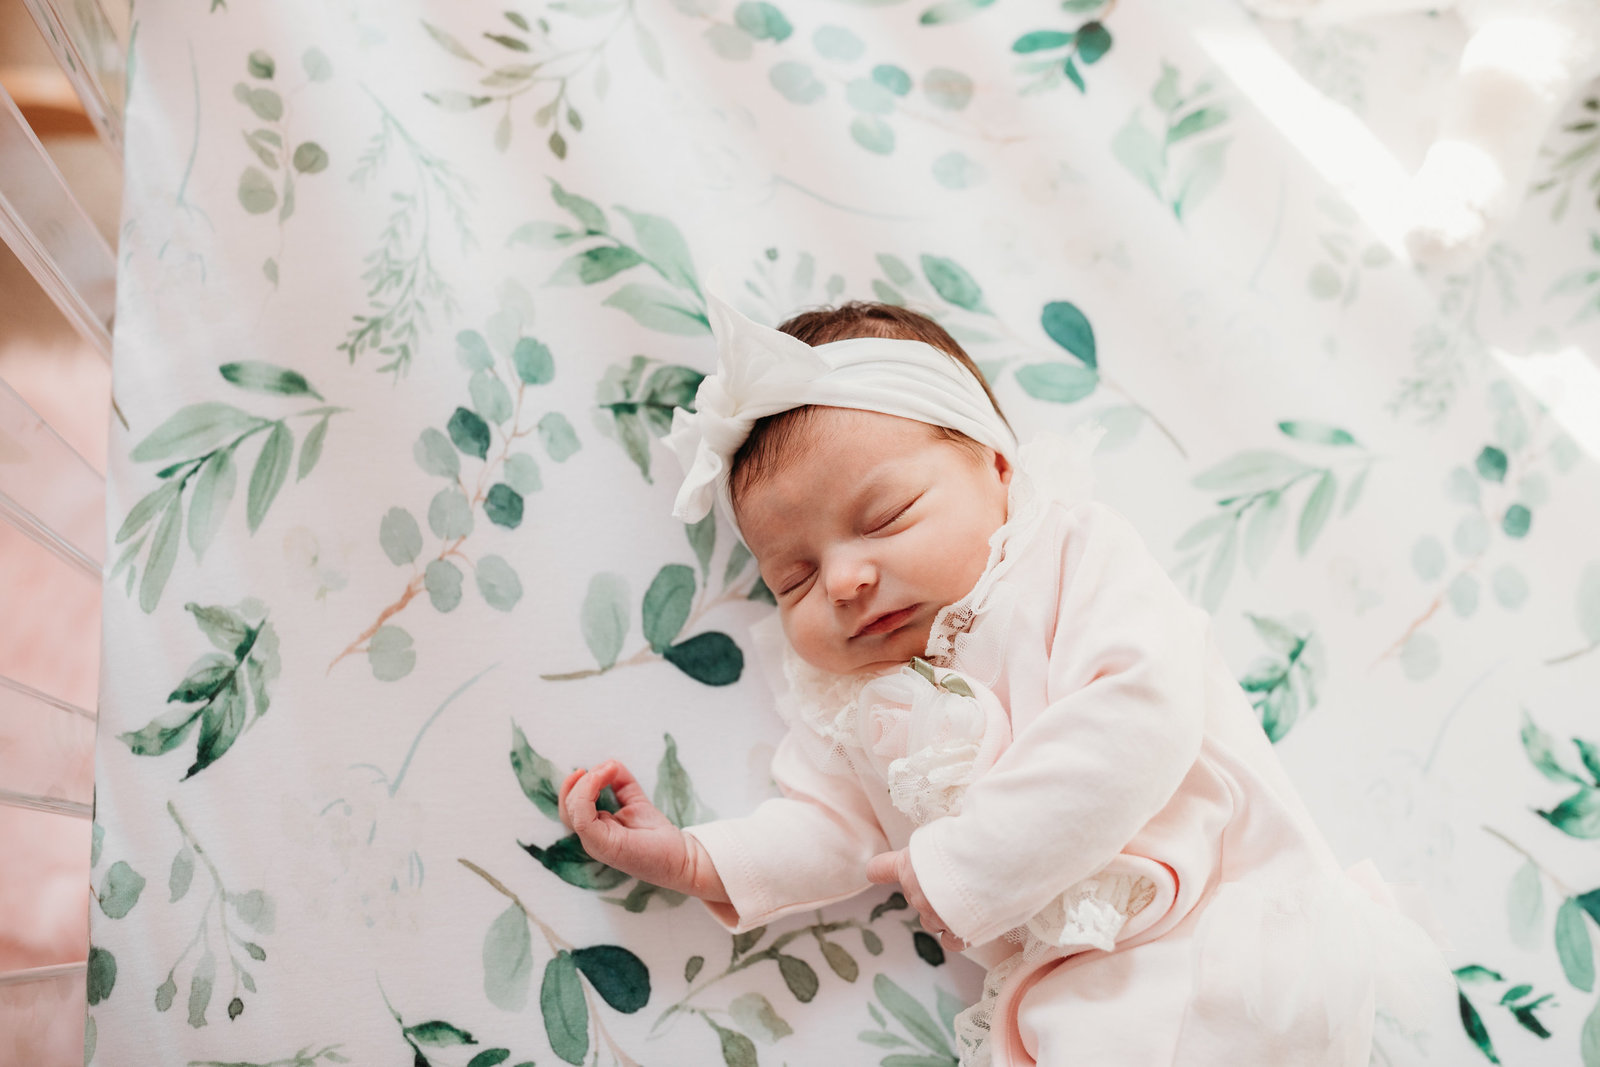 baby girl lies on beautiful crib bedding with leaves